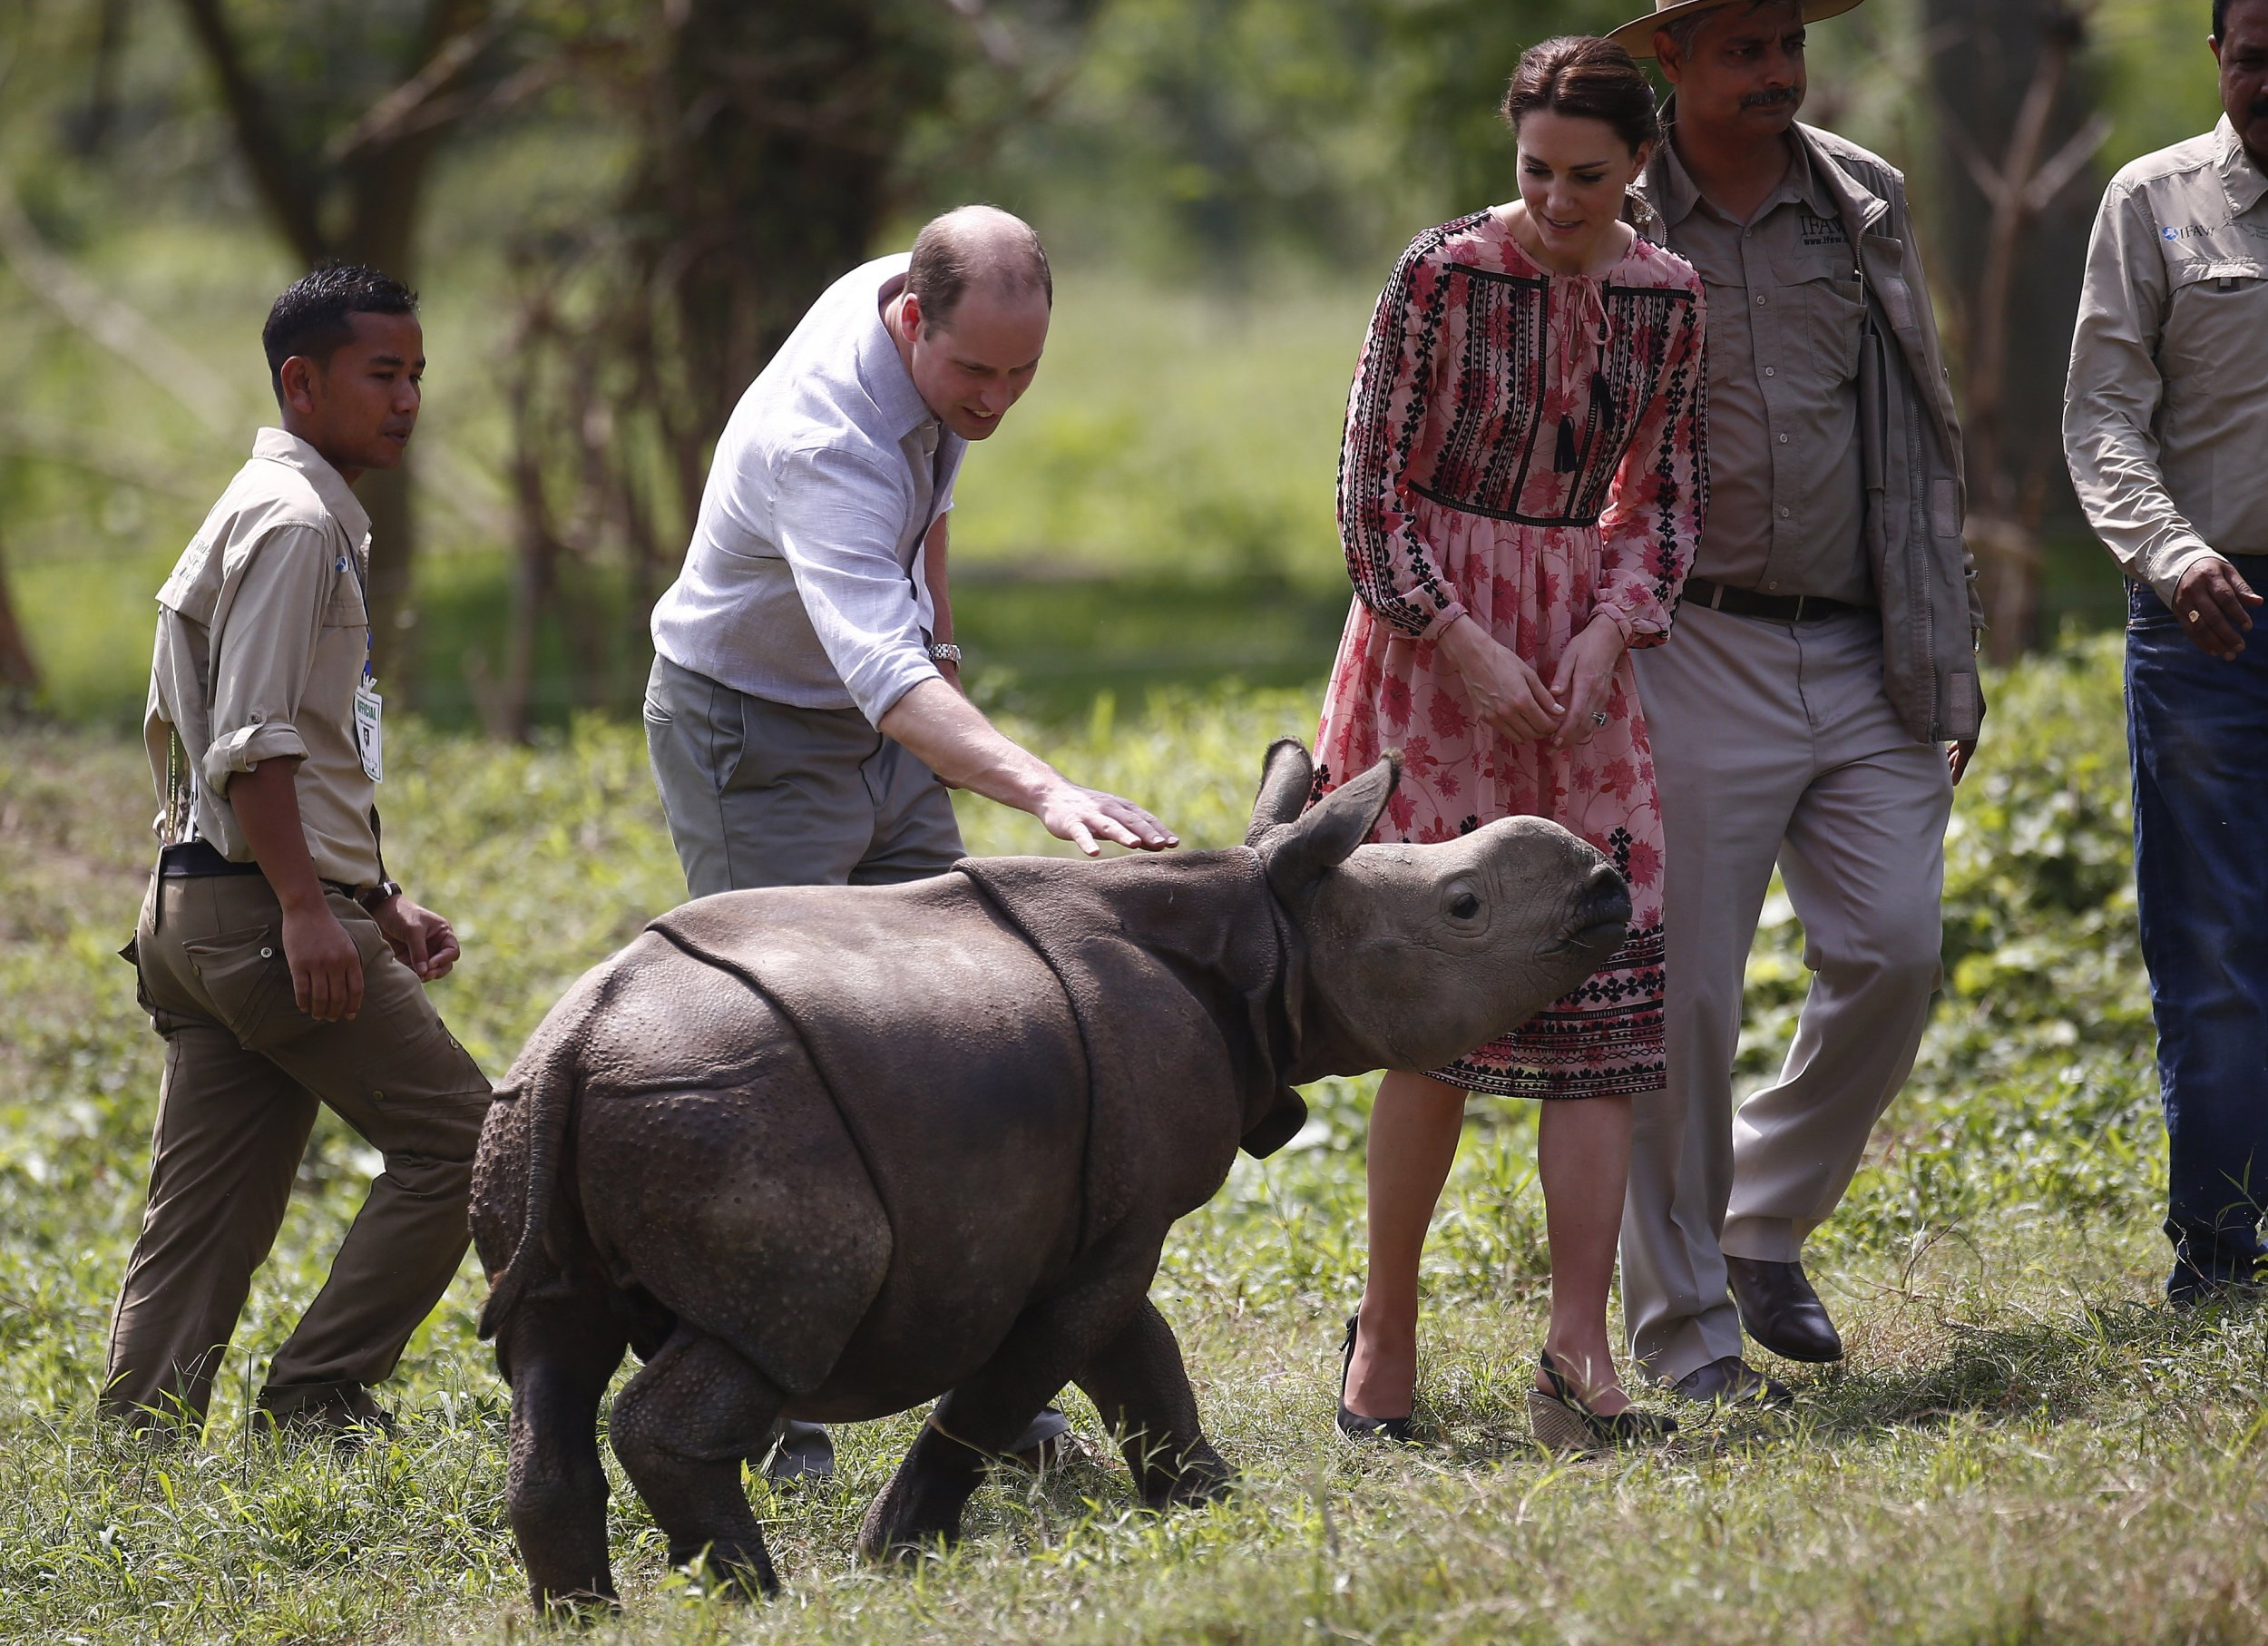 Duke and Duchess of Cambridge meet a rhino in India.